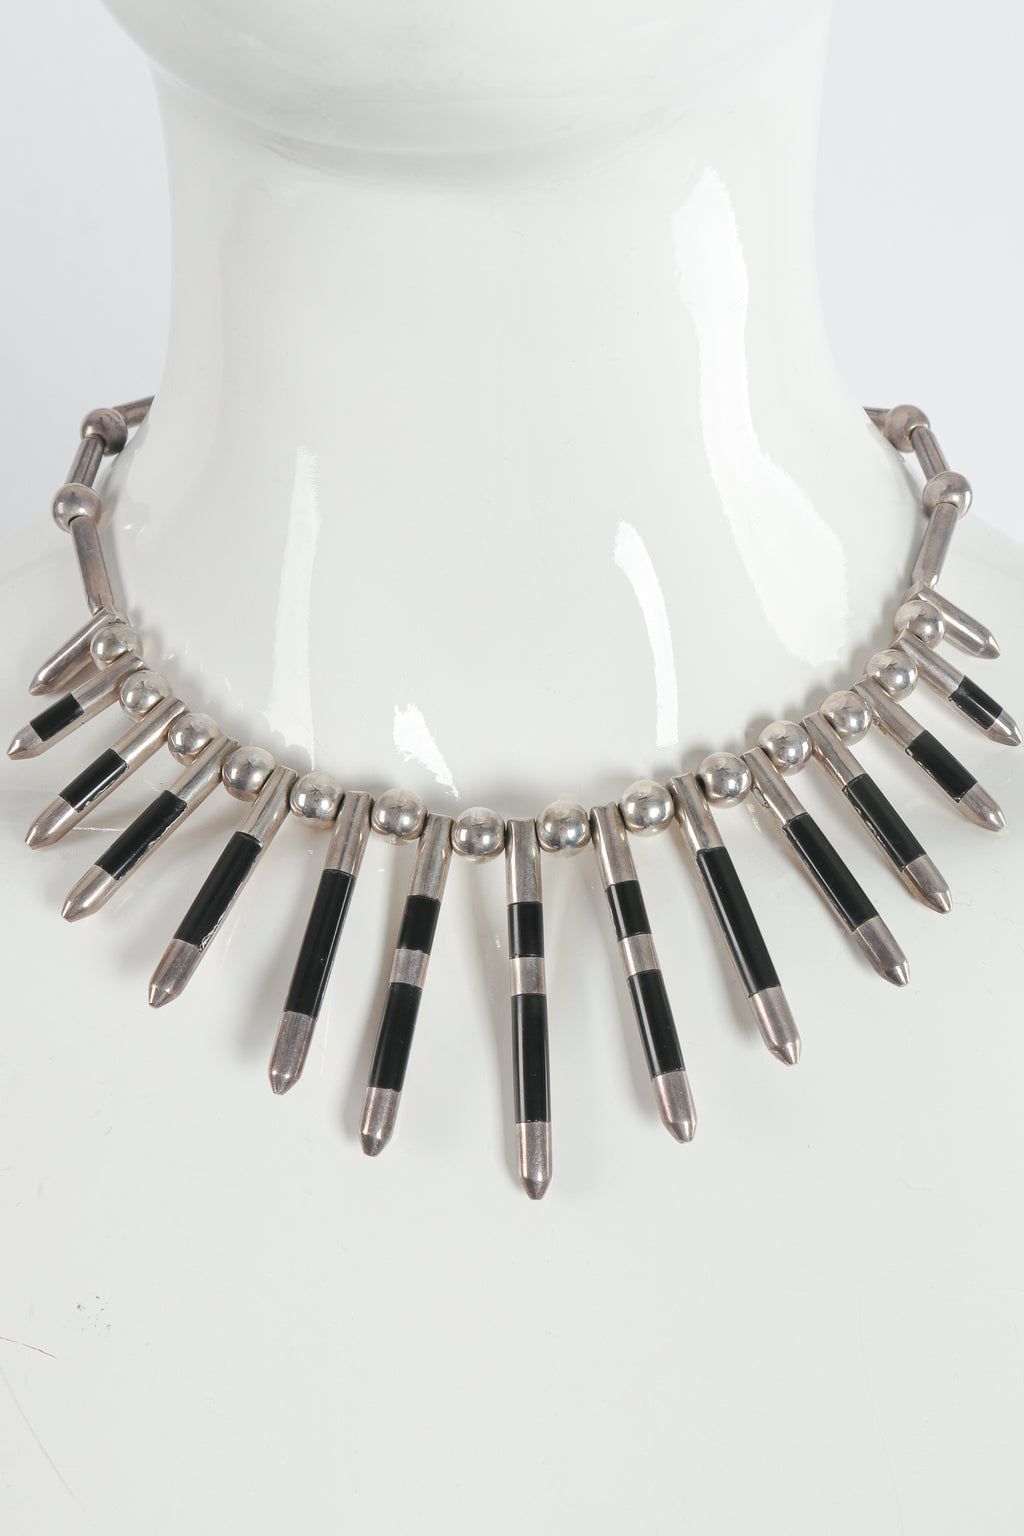 Vintage 925 Mexico Sterling Silver Spike Necklace on Mannequin at Recess Los Angeles